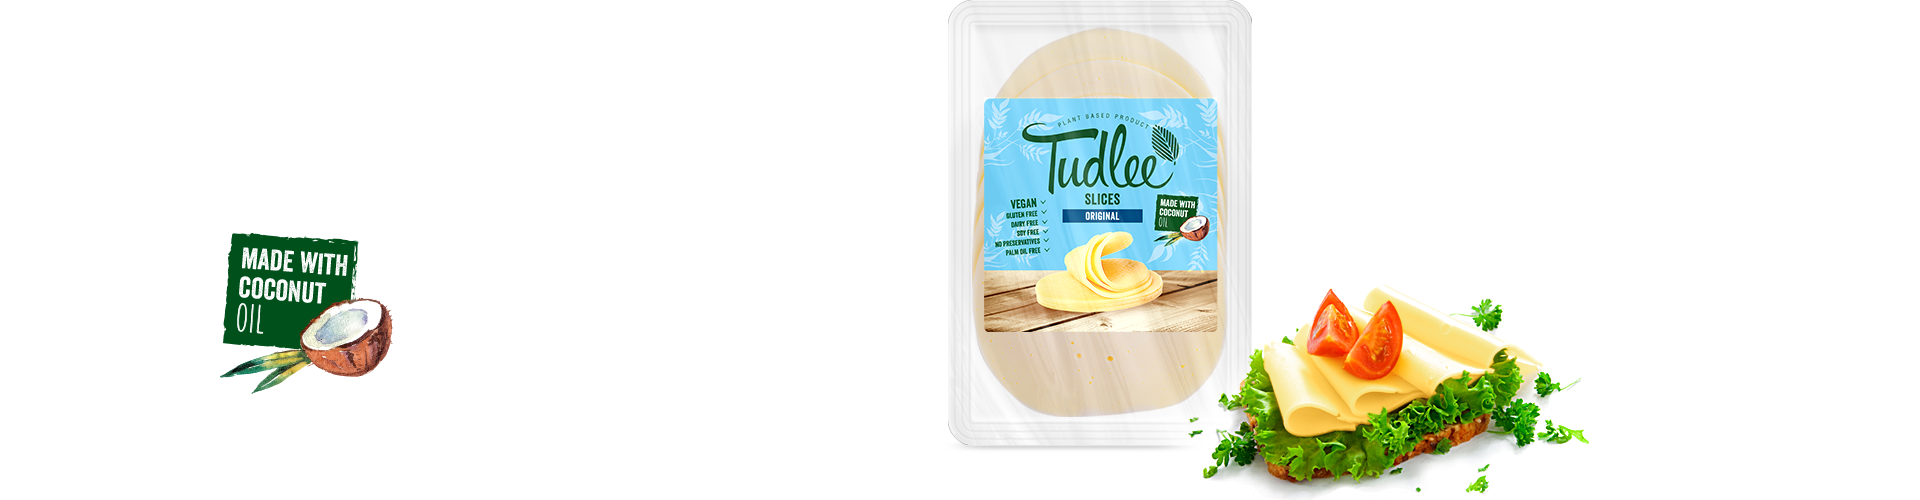 Tudlee Slices Original - vegan